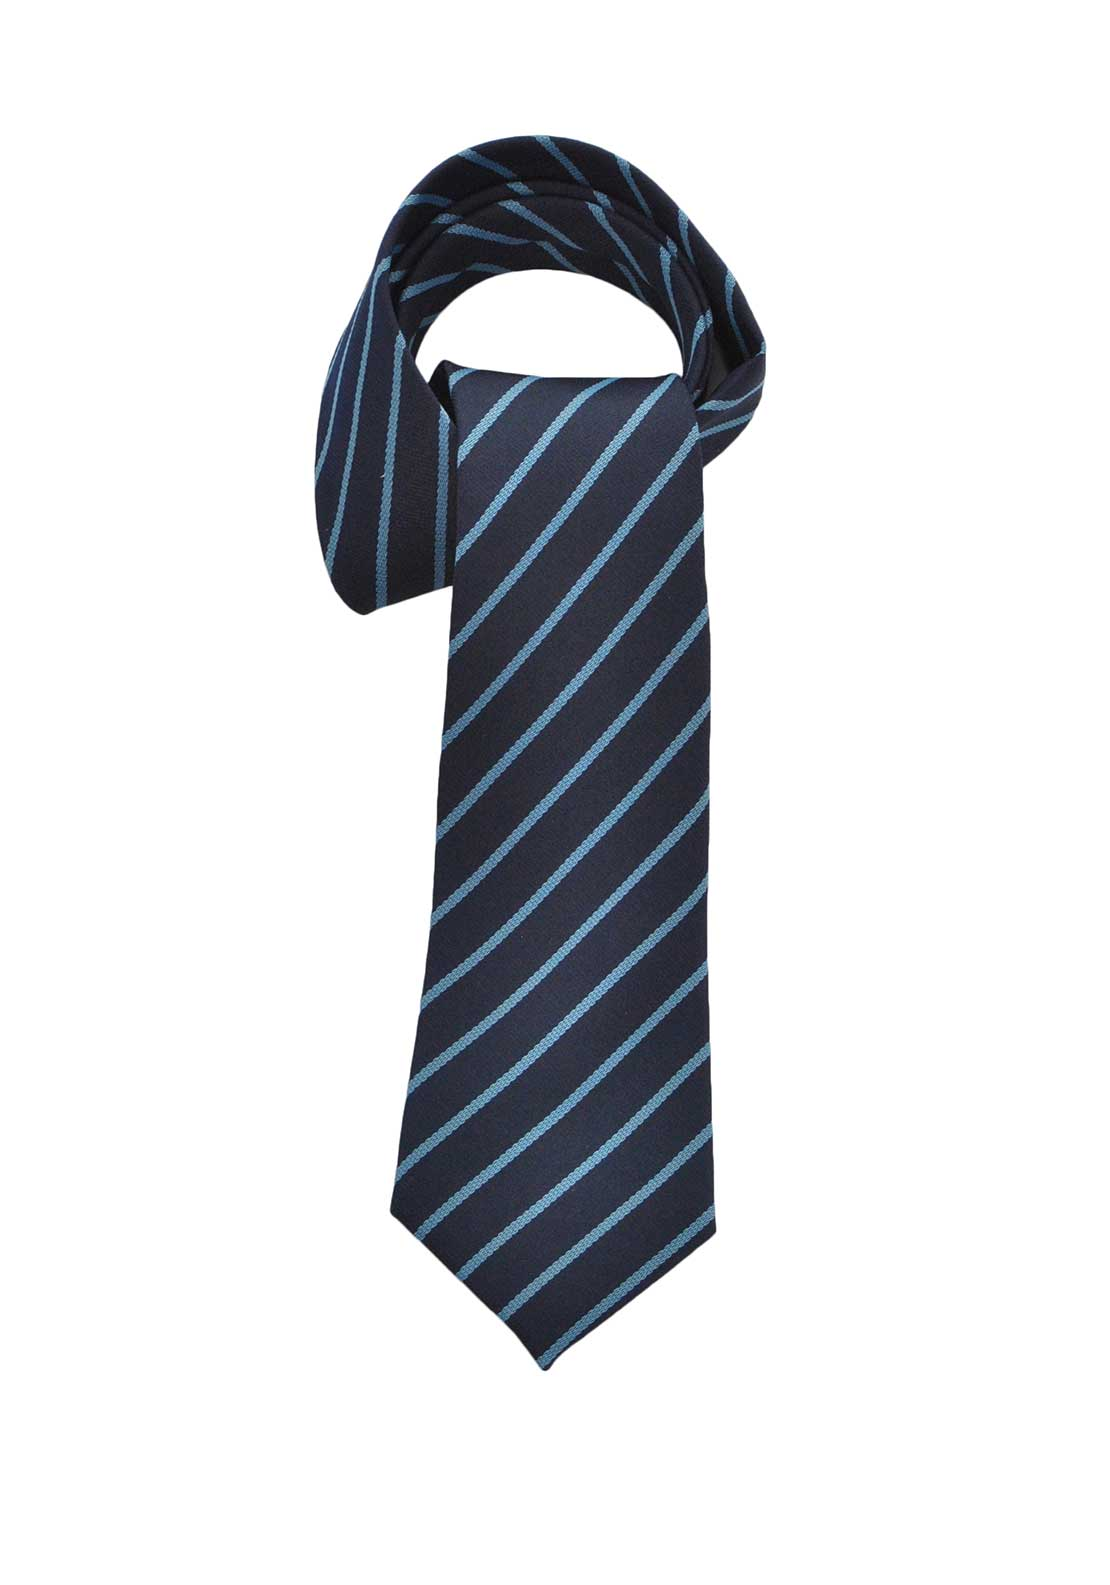 Deer Park Blue Striped School Tie, Navy